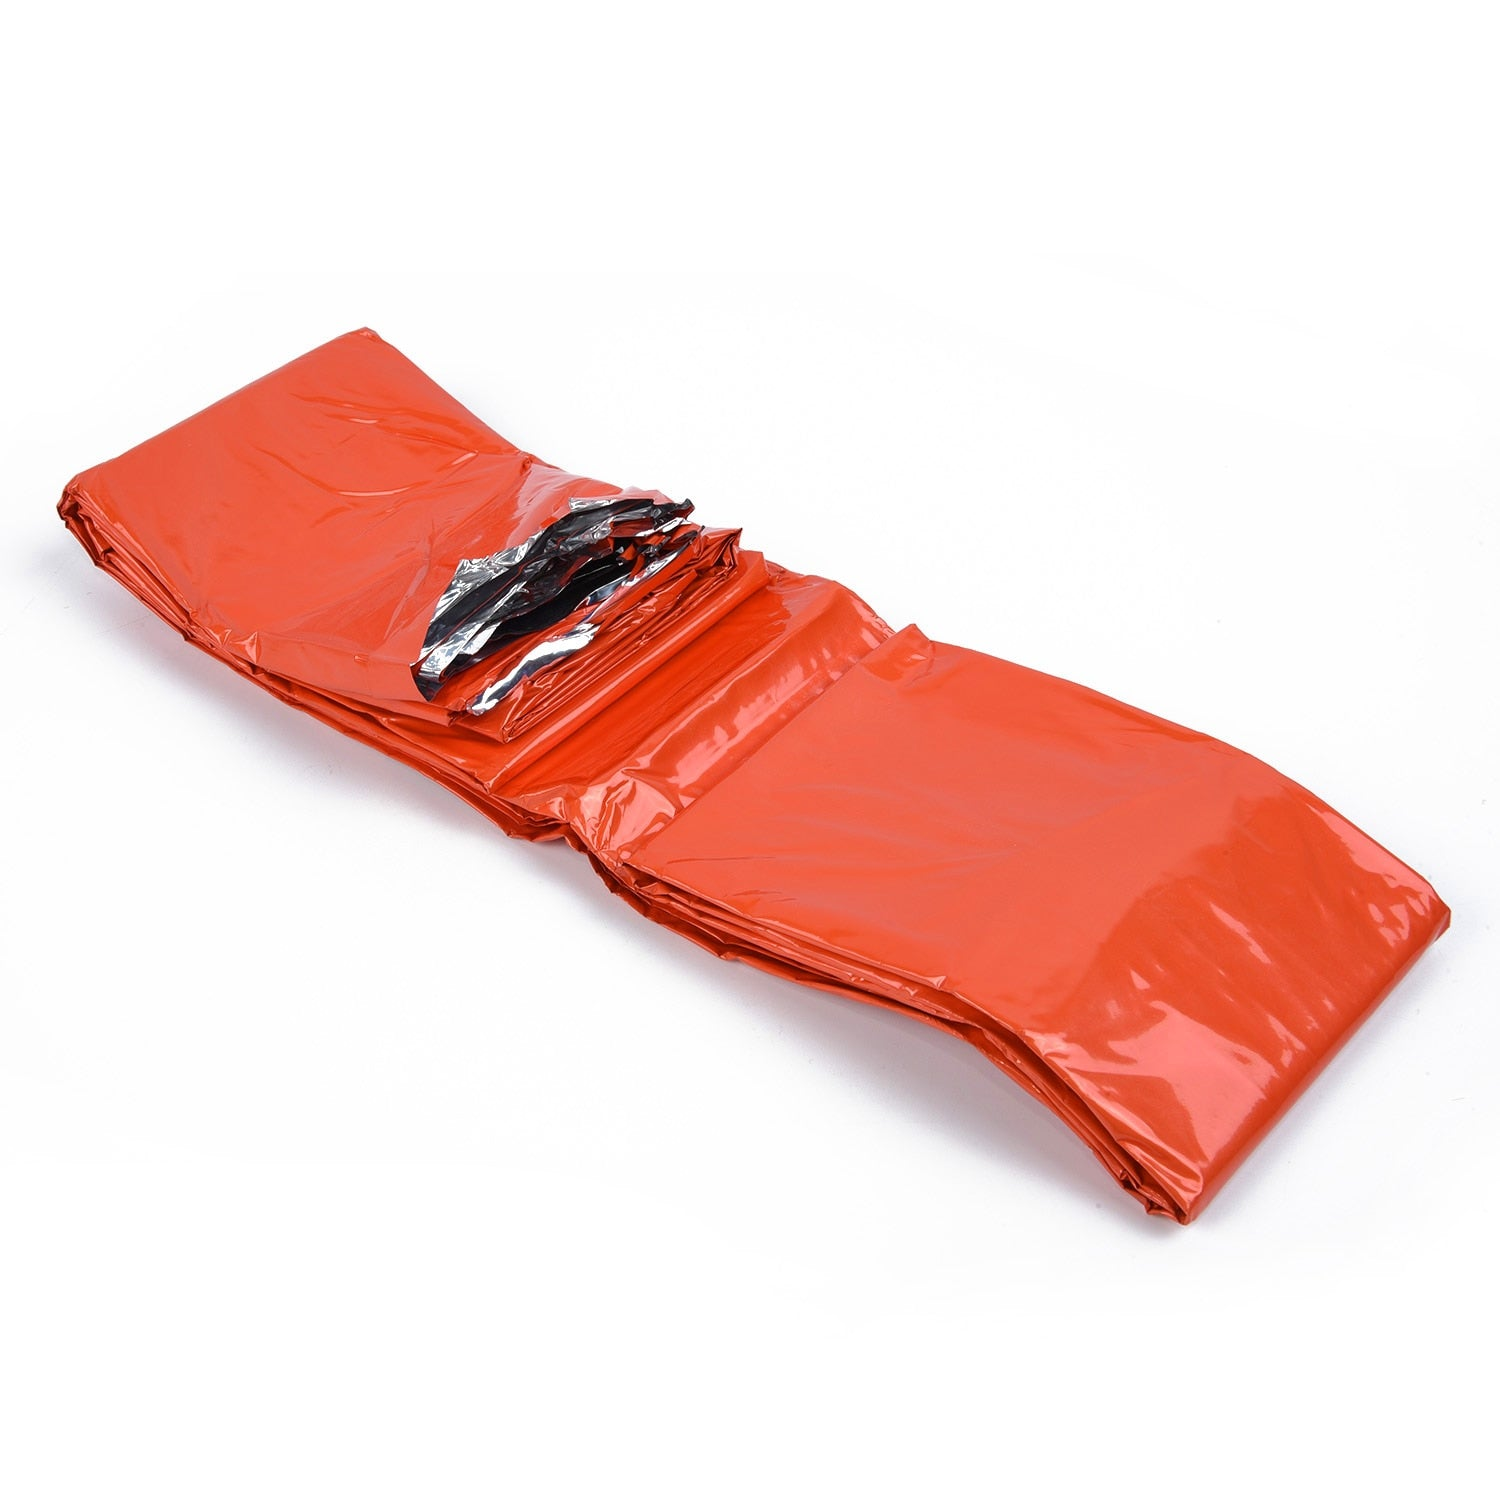 2 pcs Outdoor Emergency Sleeping Bag